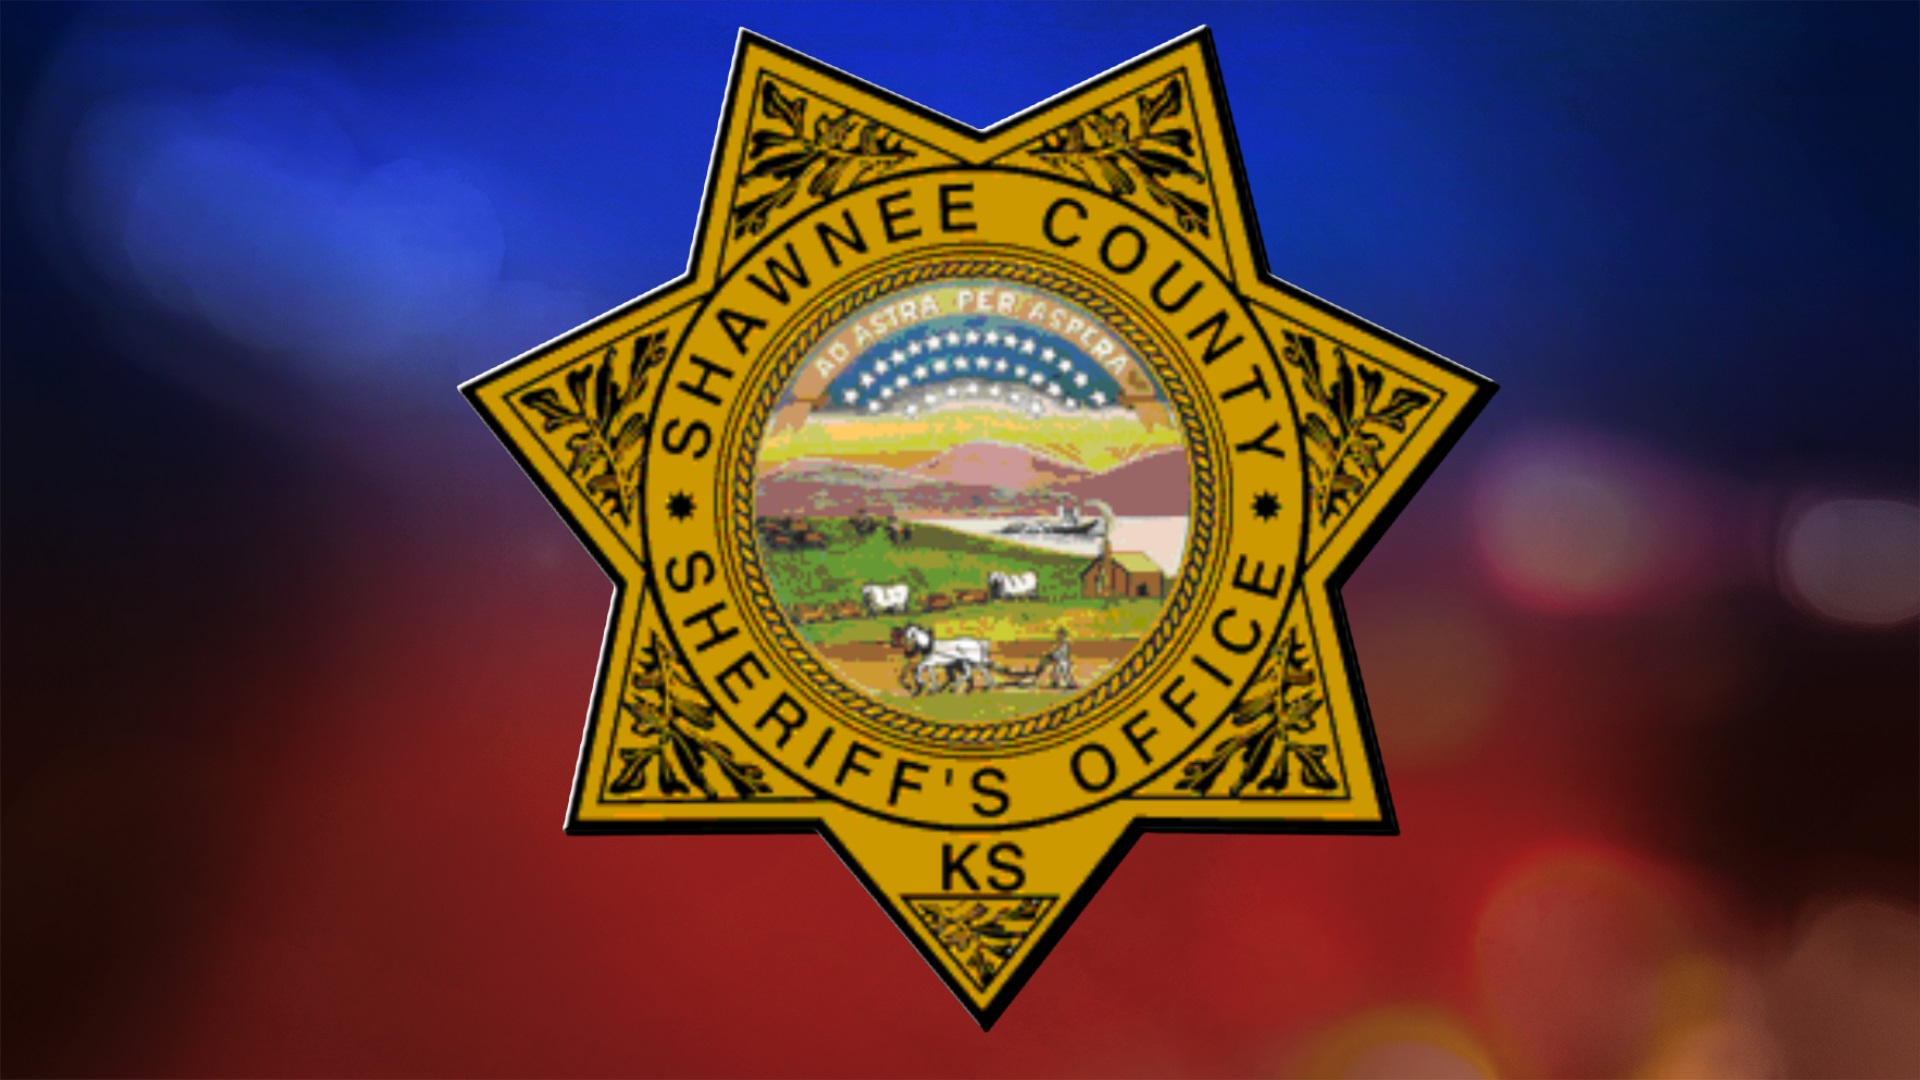 SHAWNEE COUNTY SHERIFF_206796